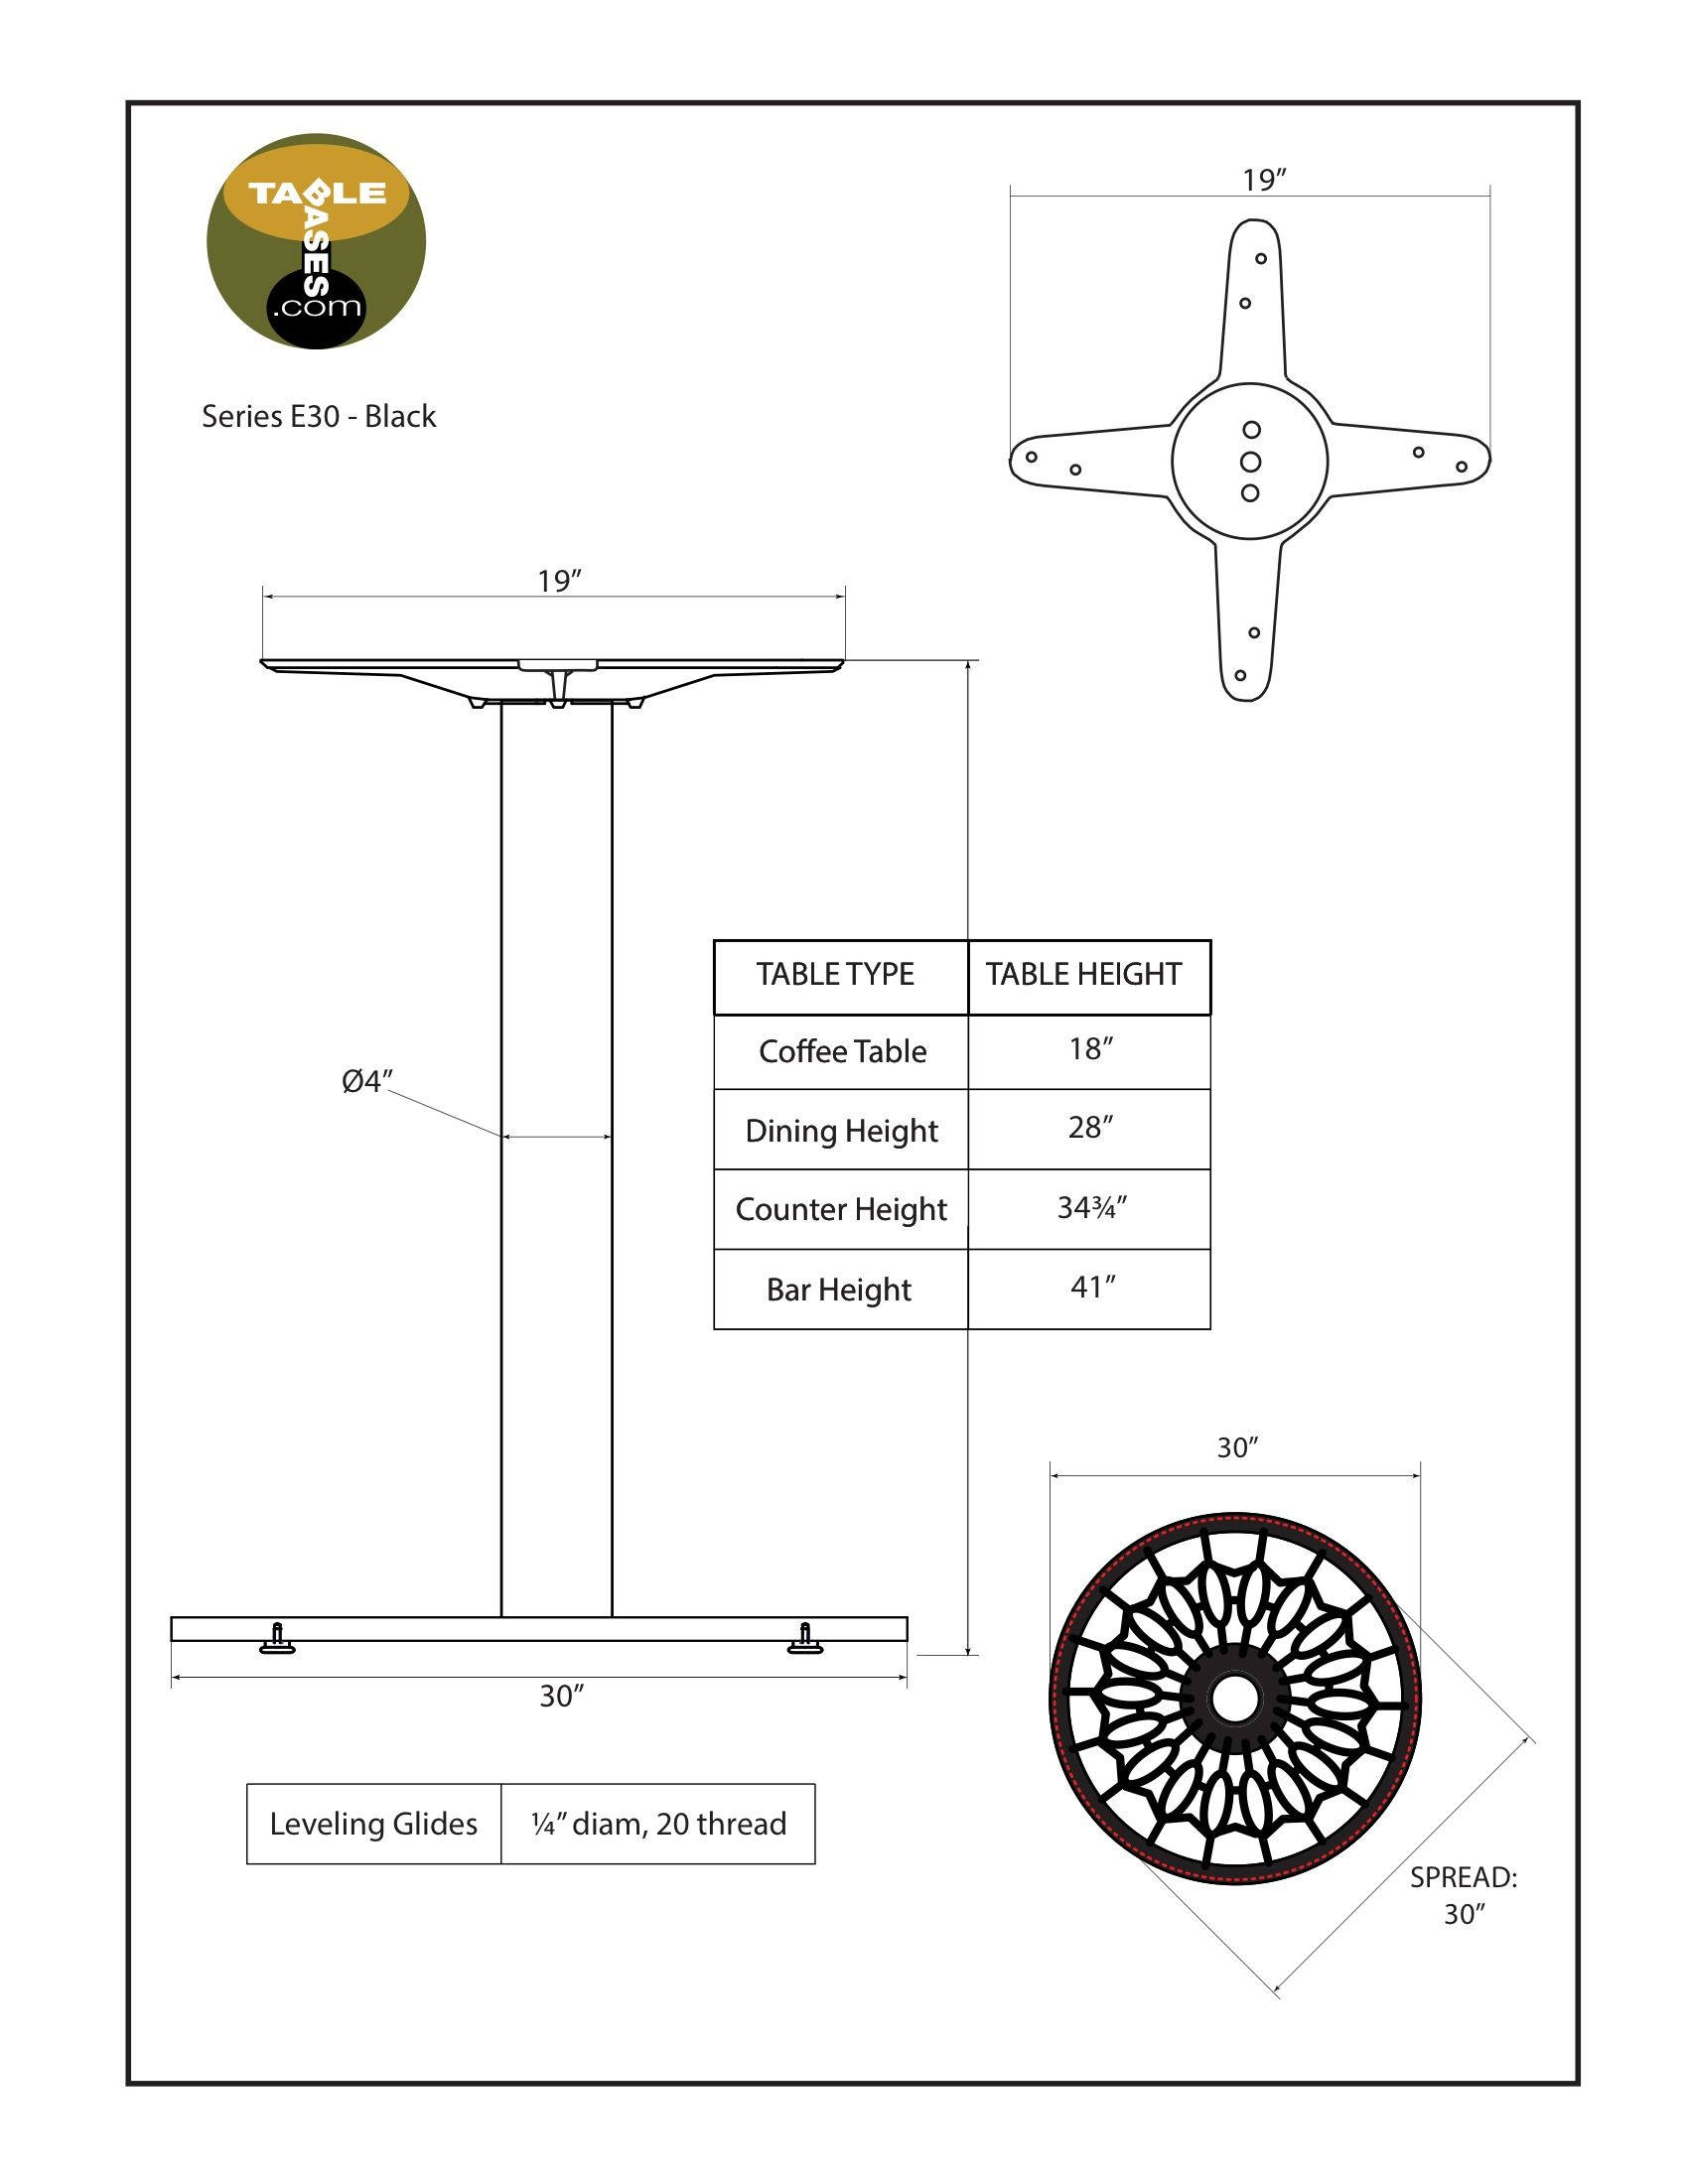 E30 Black Table Base - Specifications